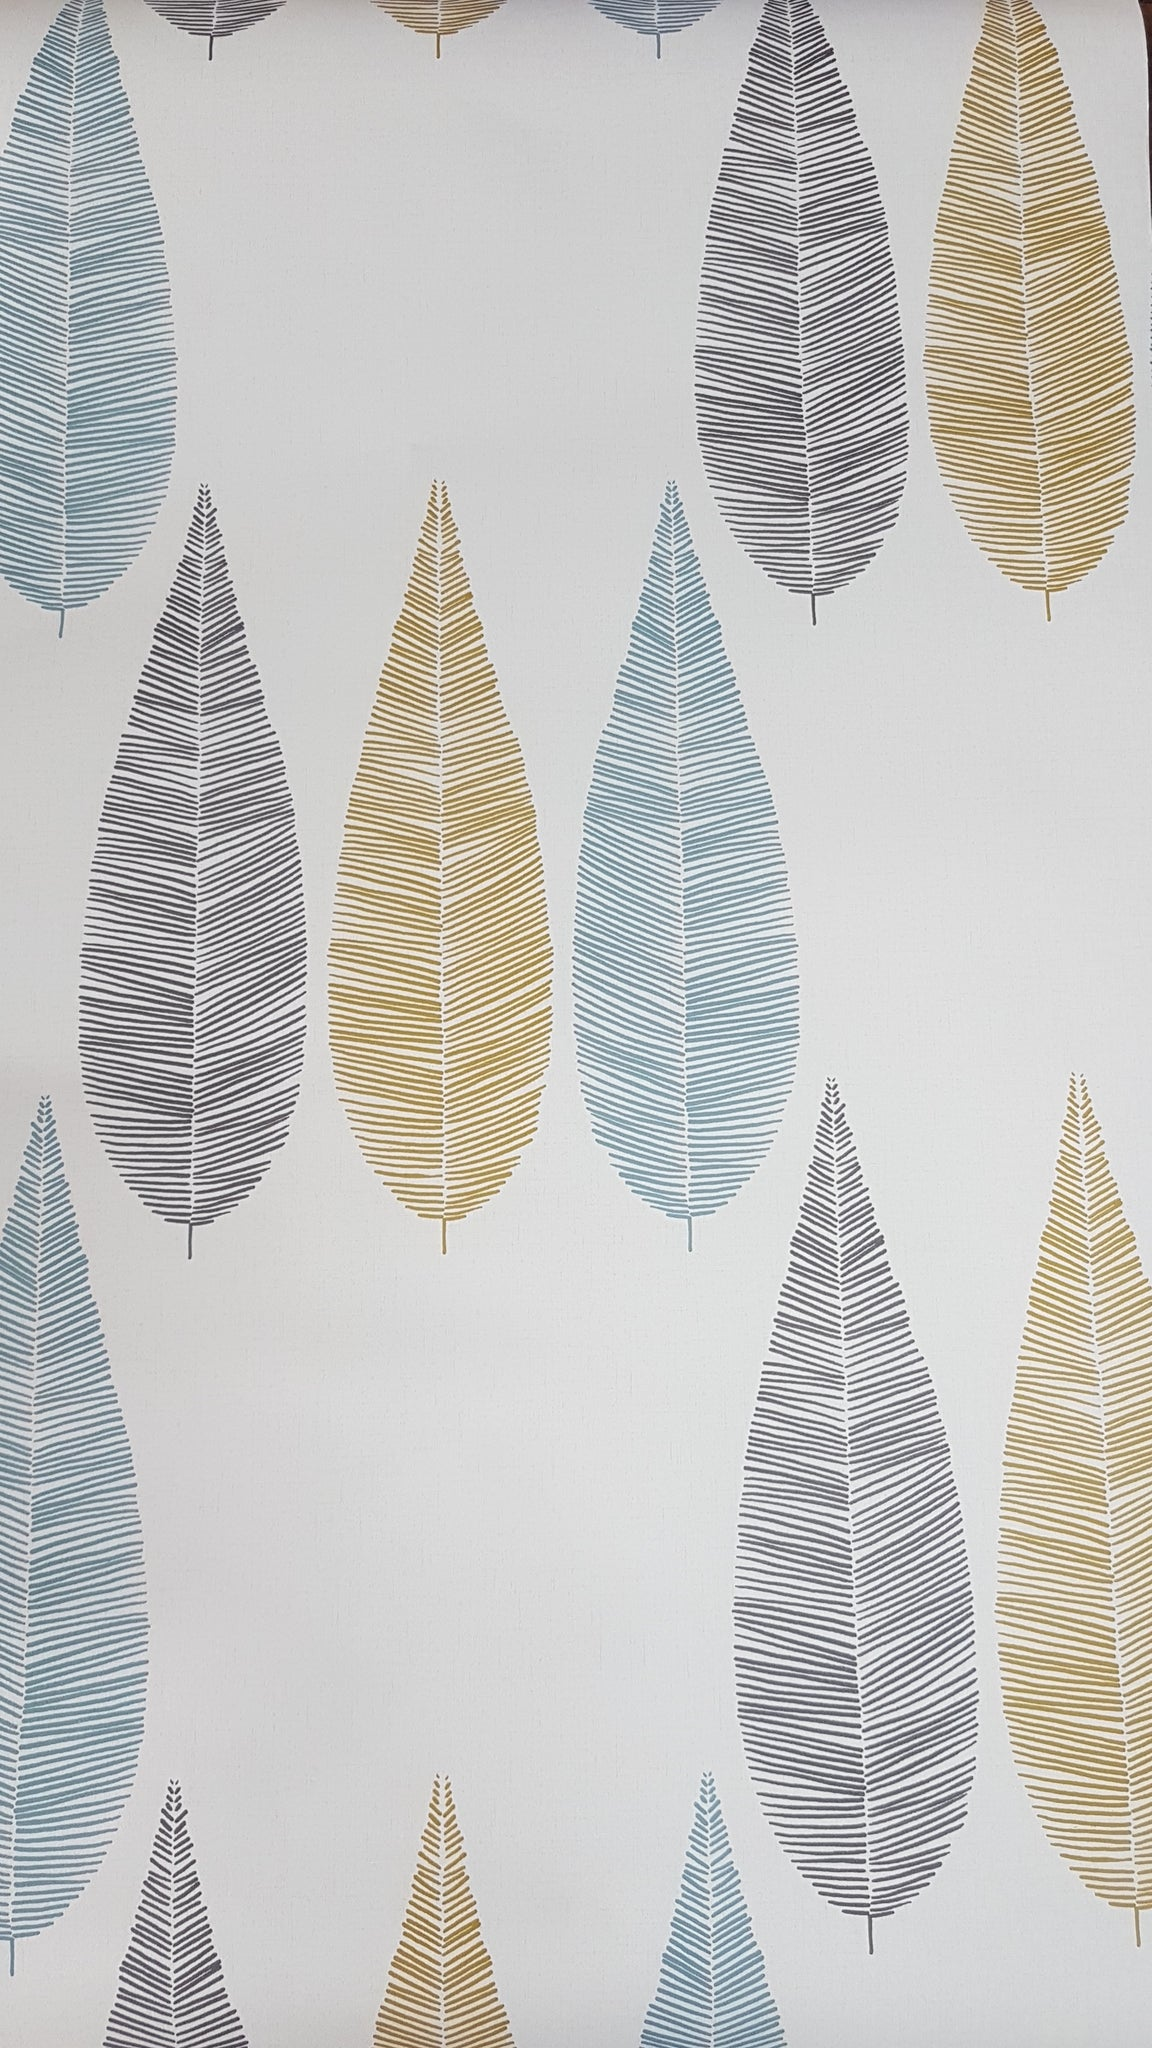 Wallpaper Scandi style leaves / metre